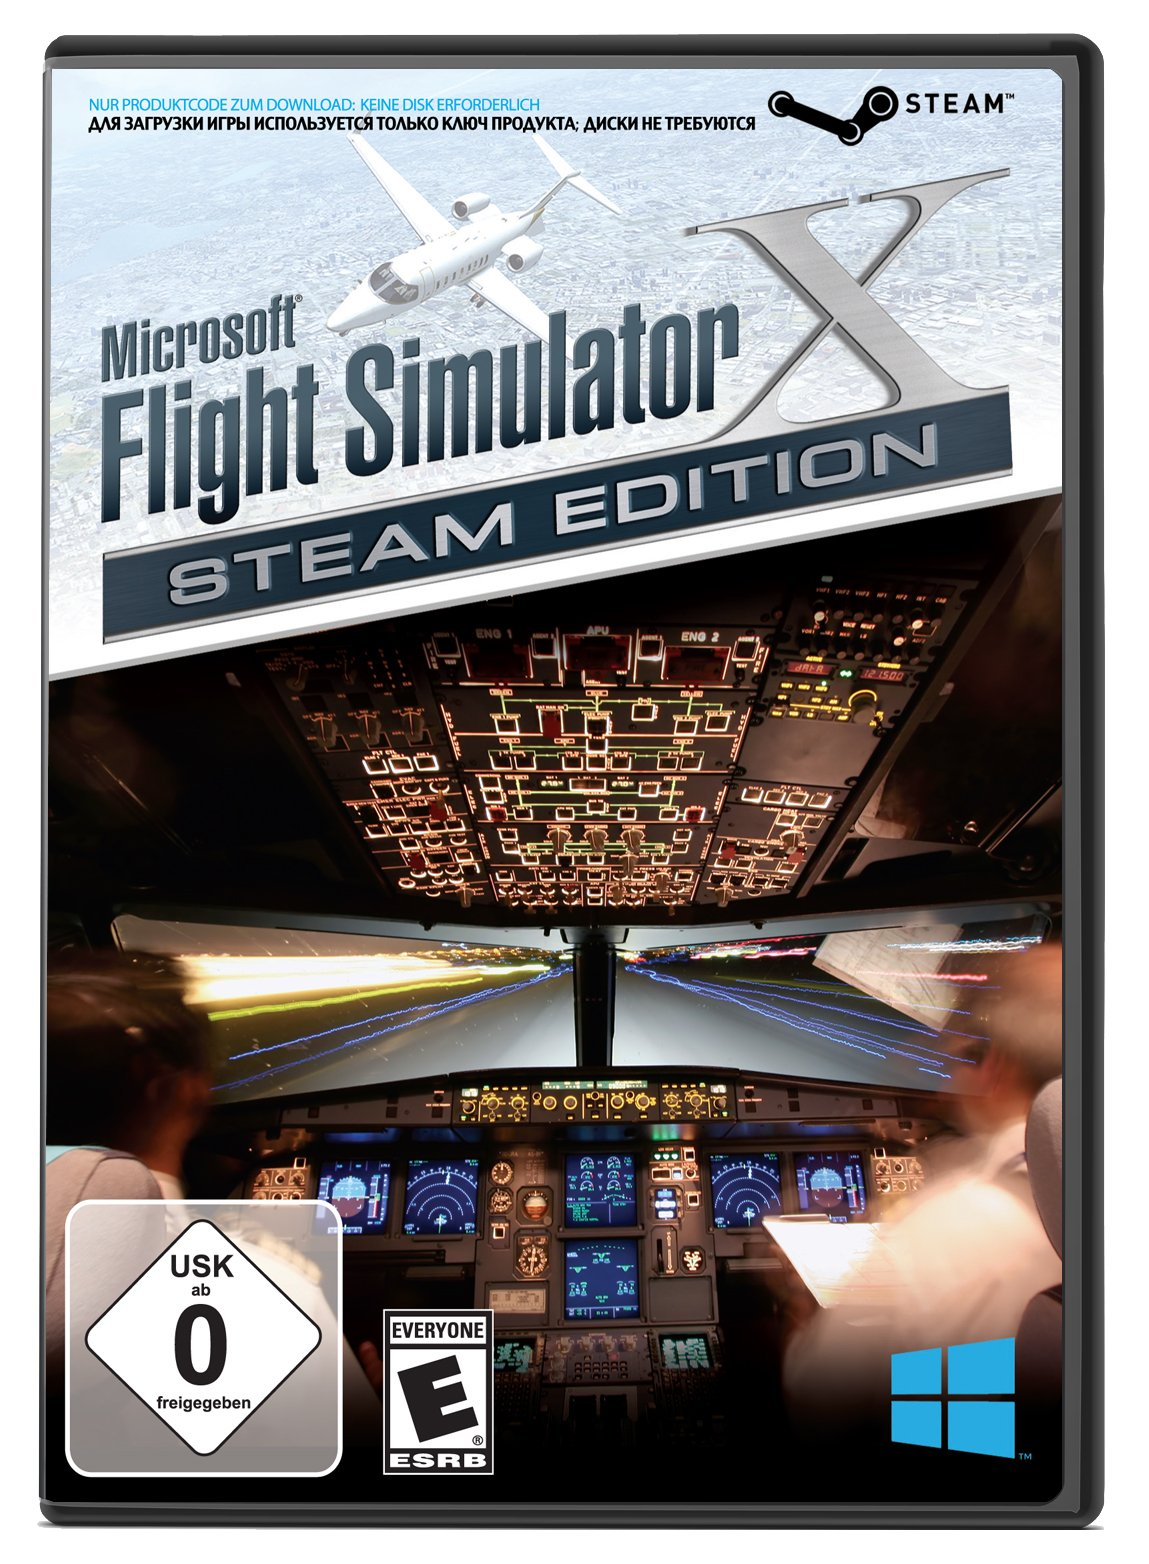 Microsoft Flight Simulator X: Steam Edition for PC - Windows (select)(Boxed Steam Code)-Downloadable Product Code Only: No Disc Required by Mad Catz